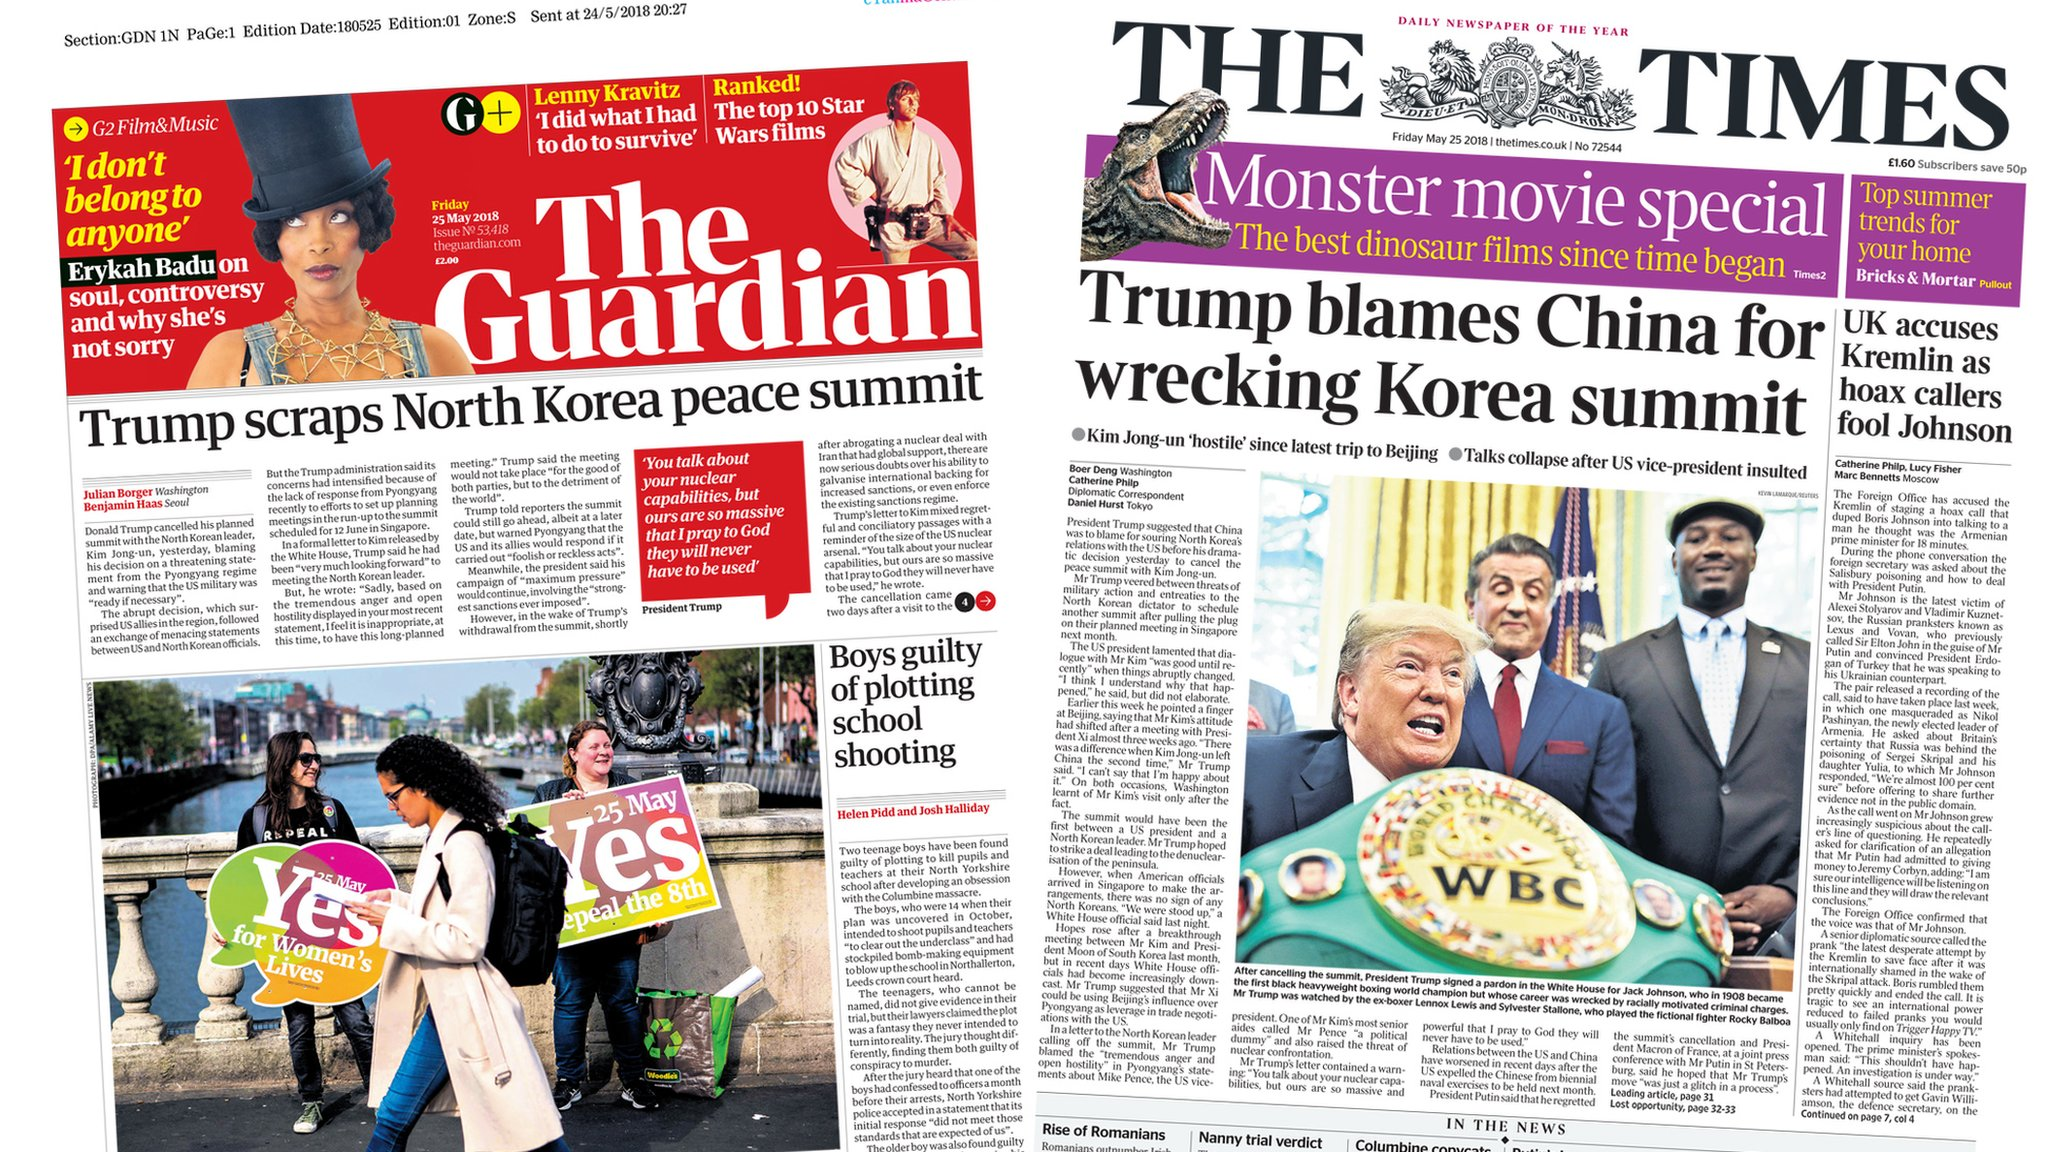 The Papers: Uncertainty as Trump cancels N Korea talks